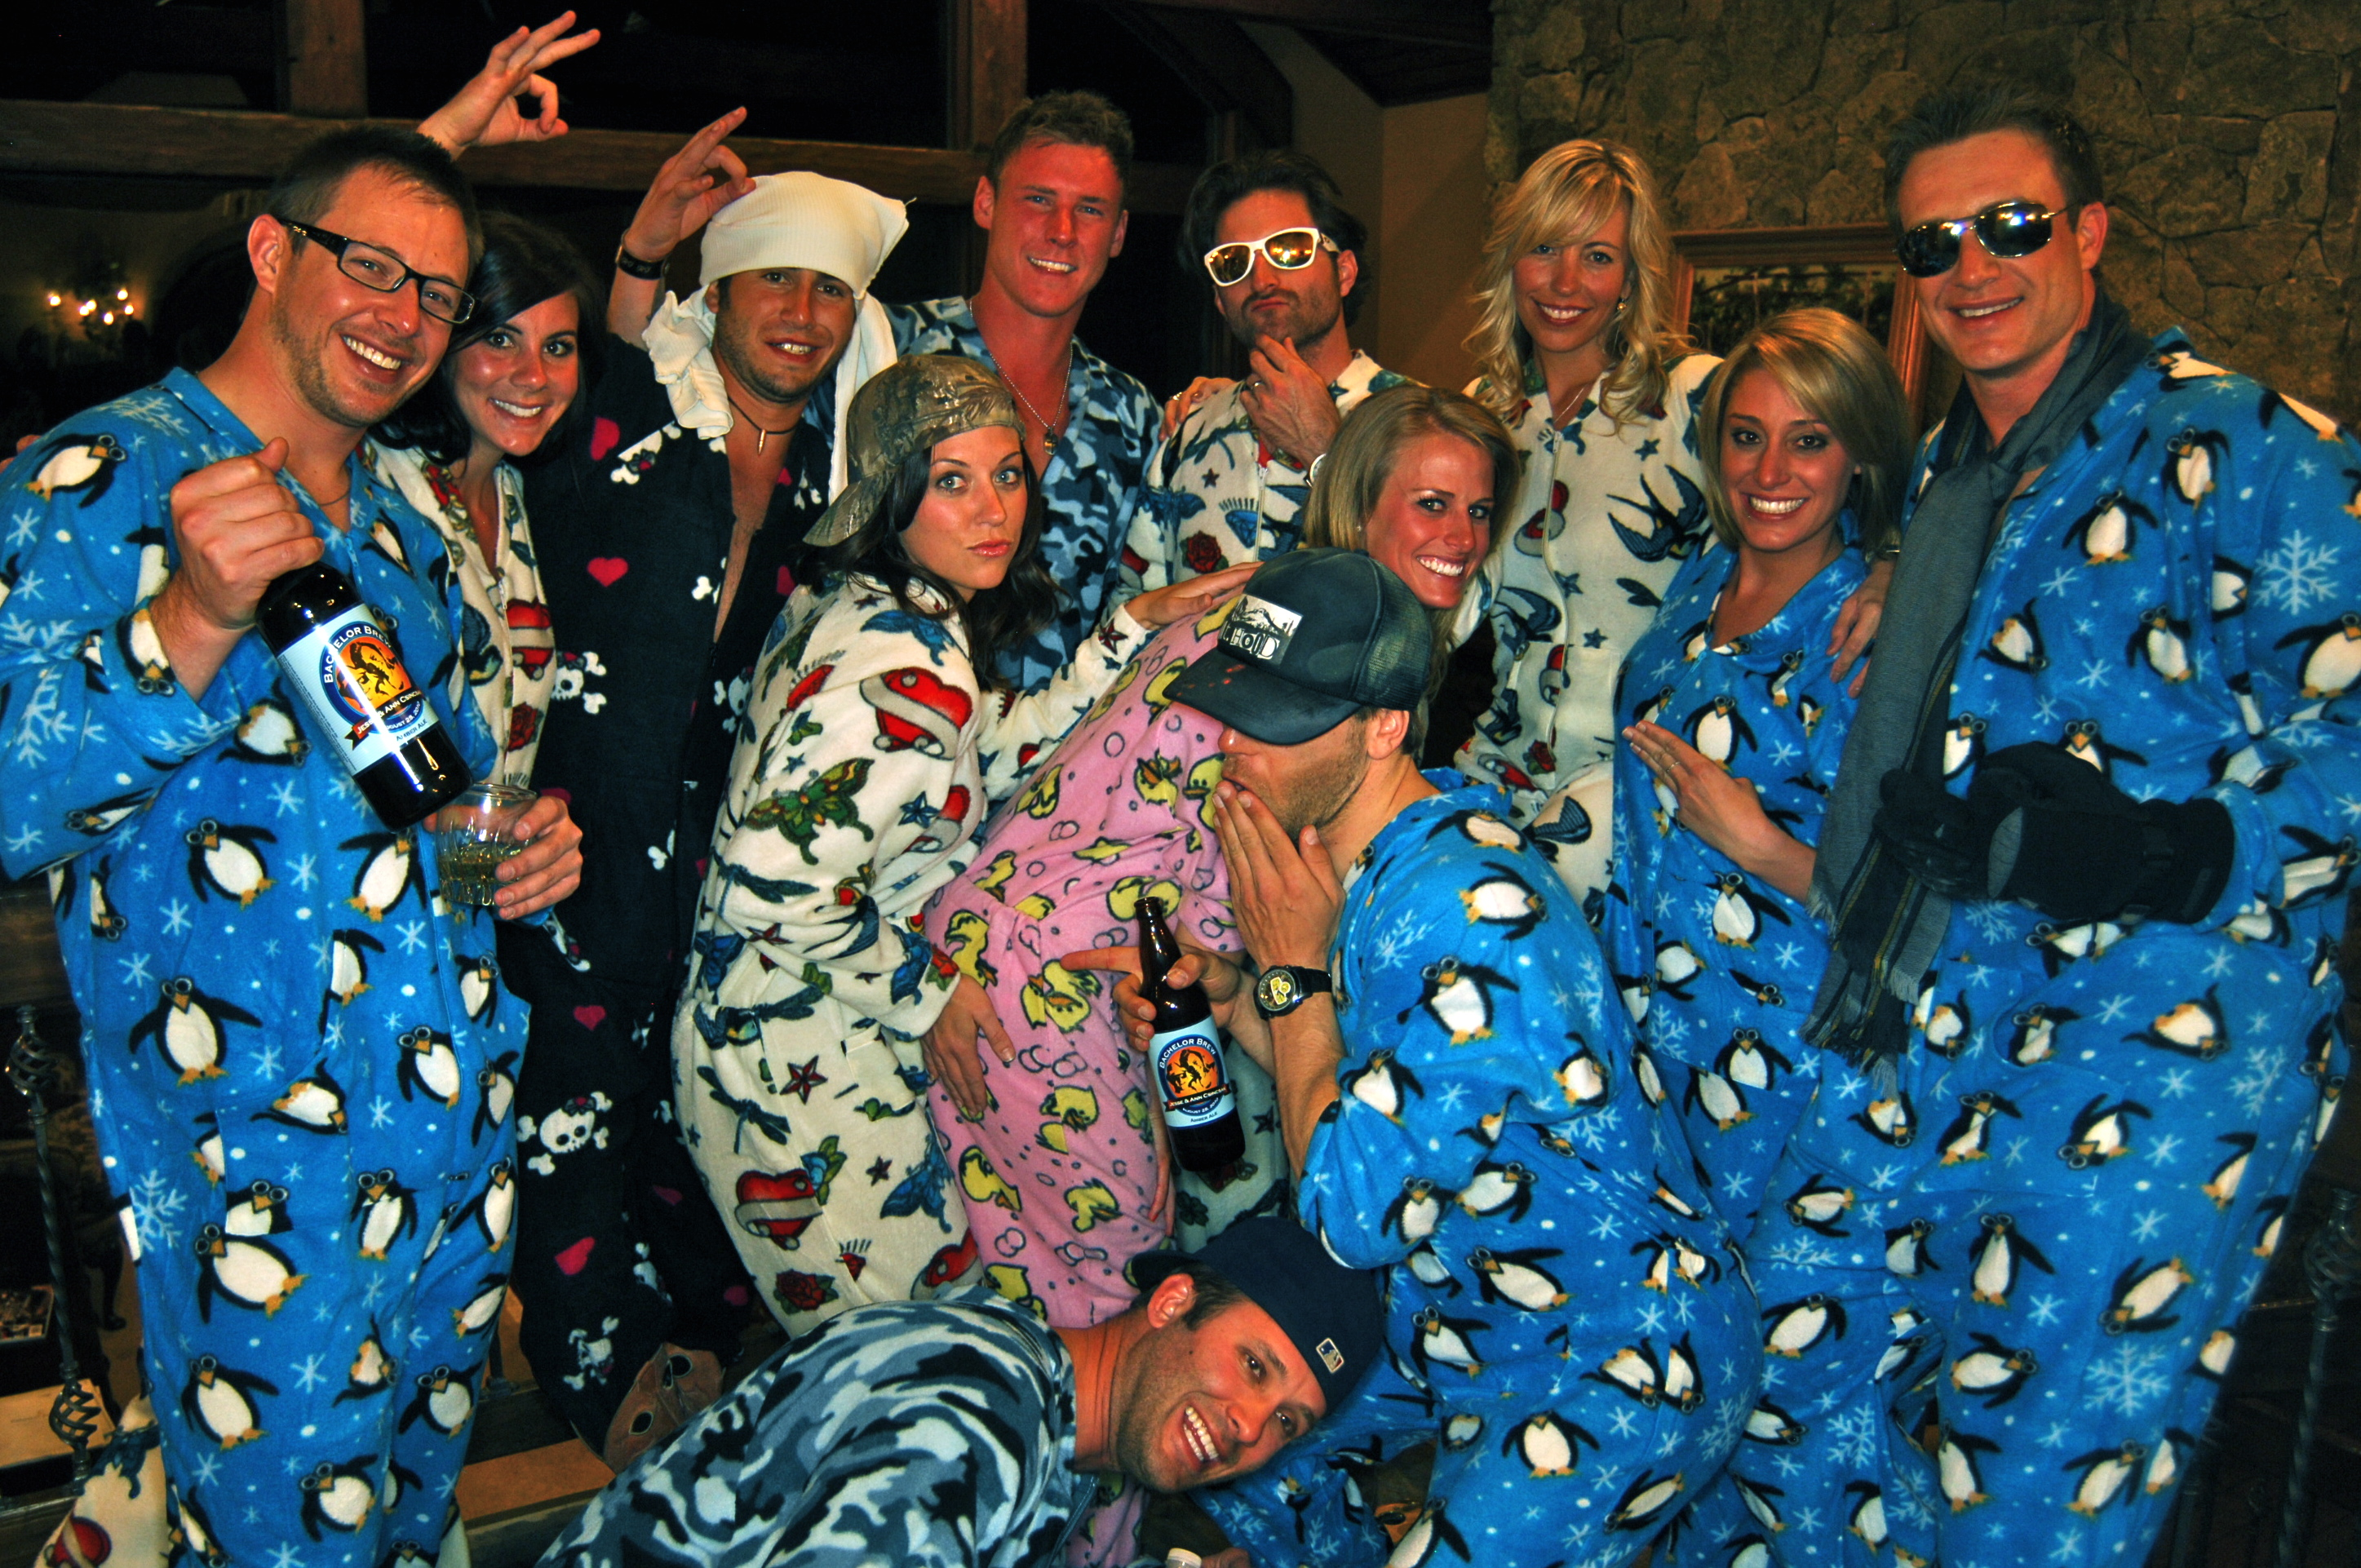 Cupid's Pulse Article: A Cozy 2011 'Bachelor' Reunion in Colorado!